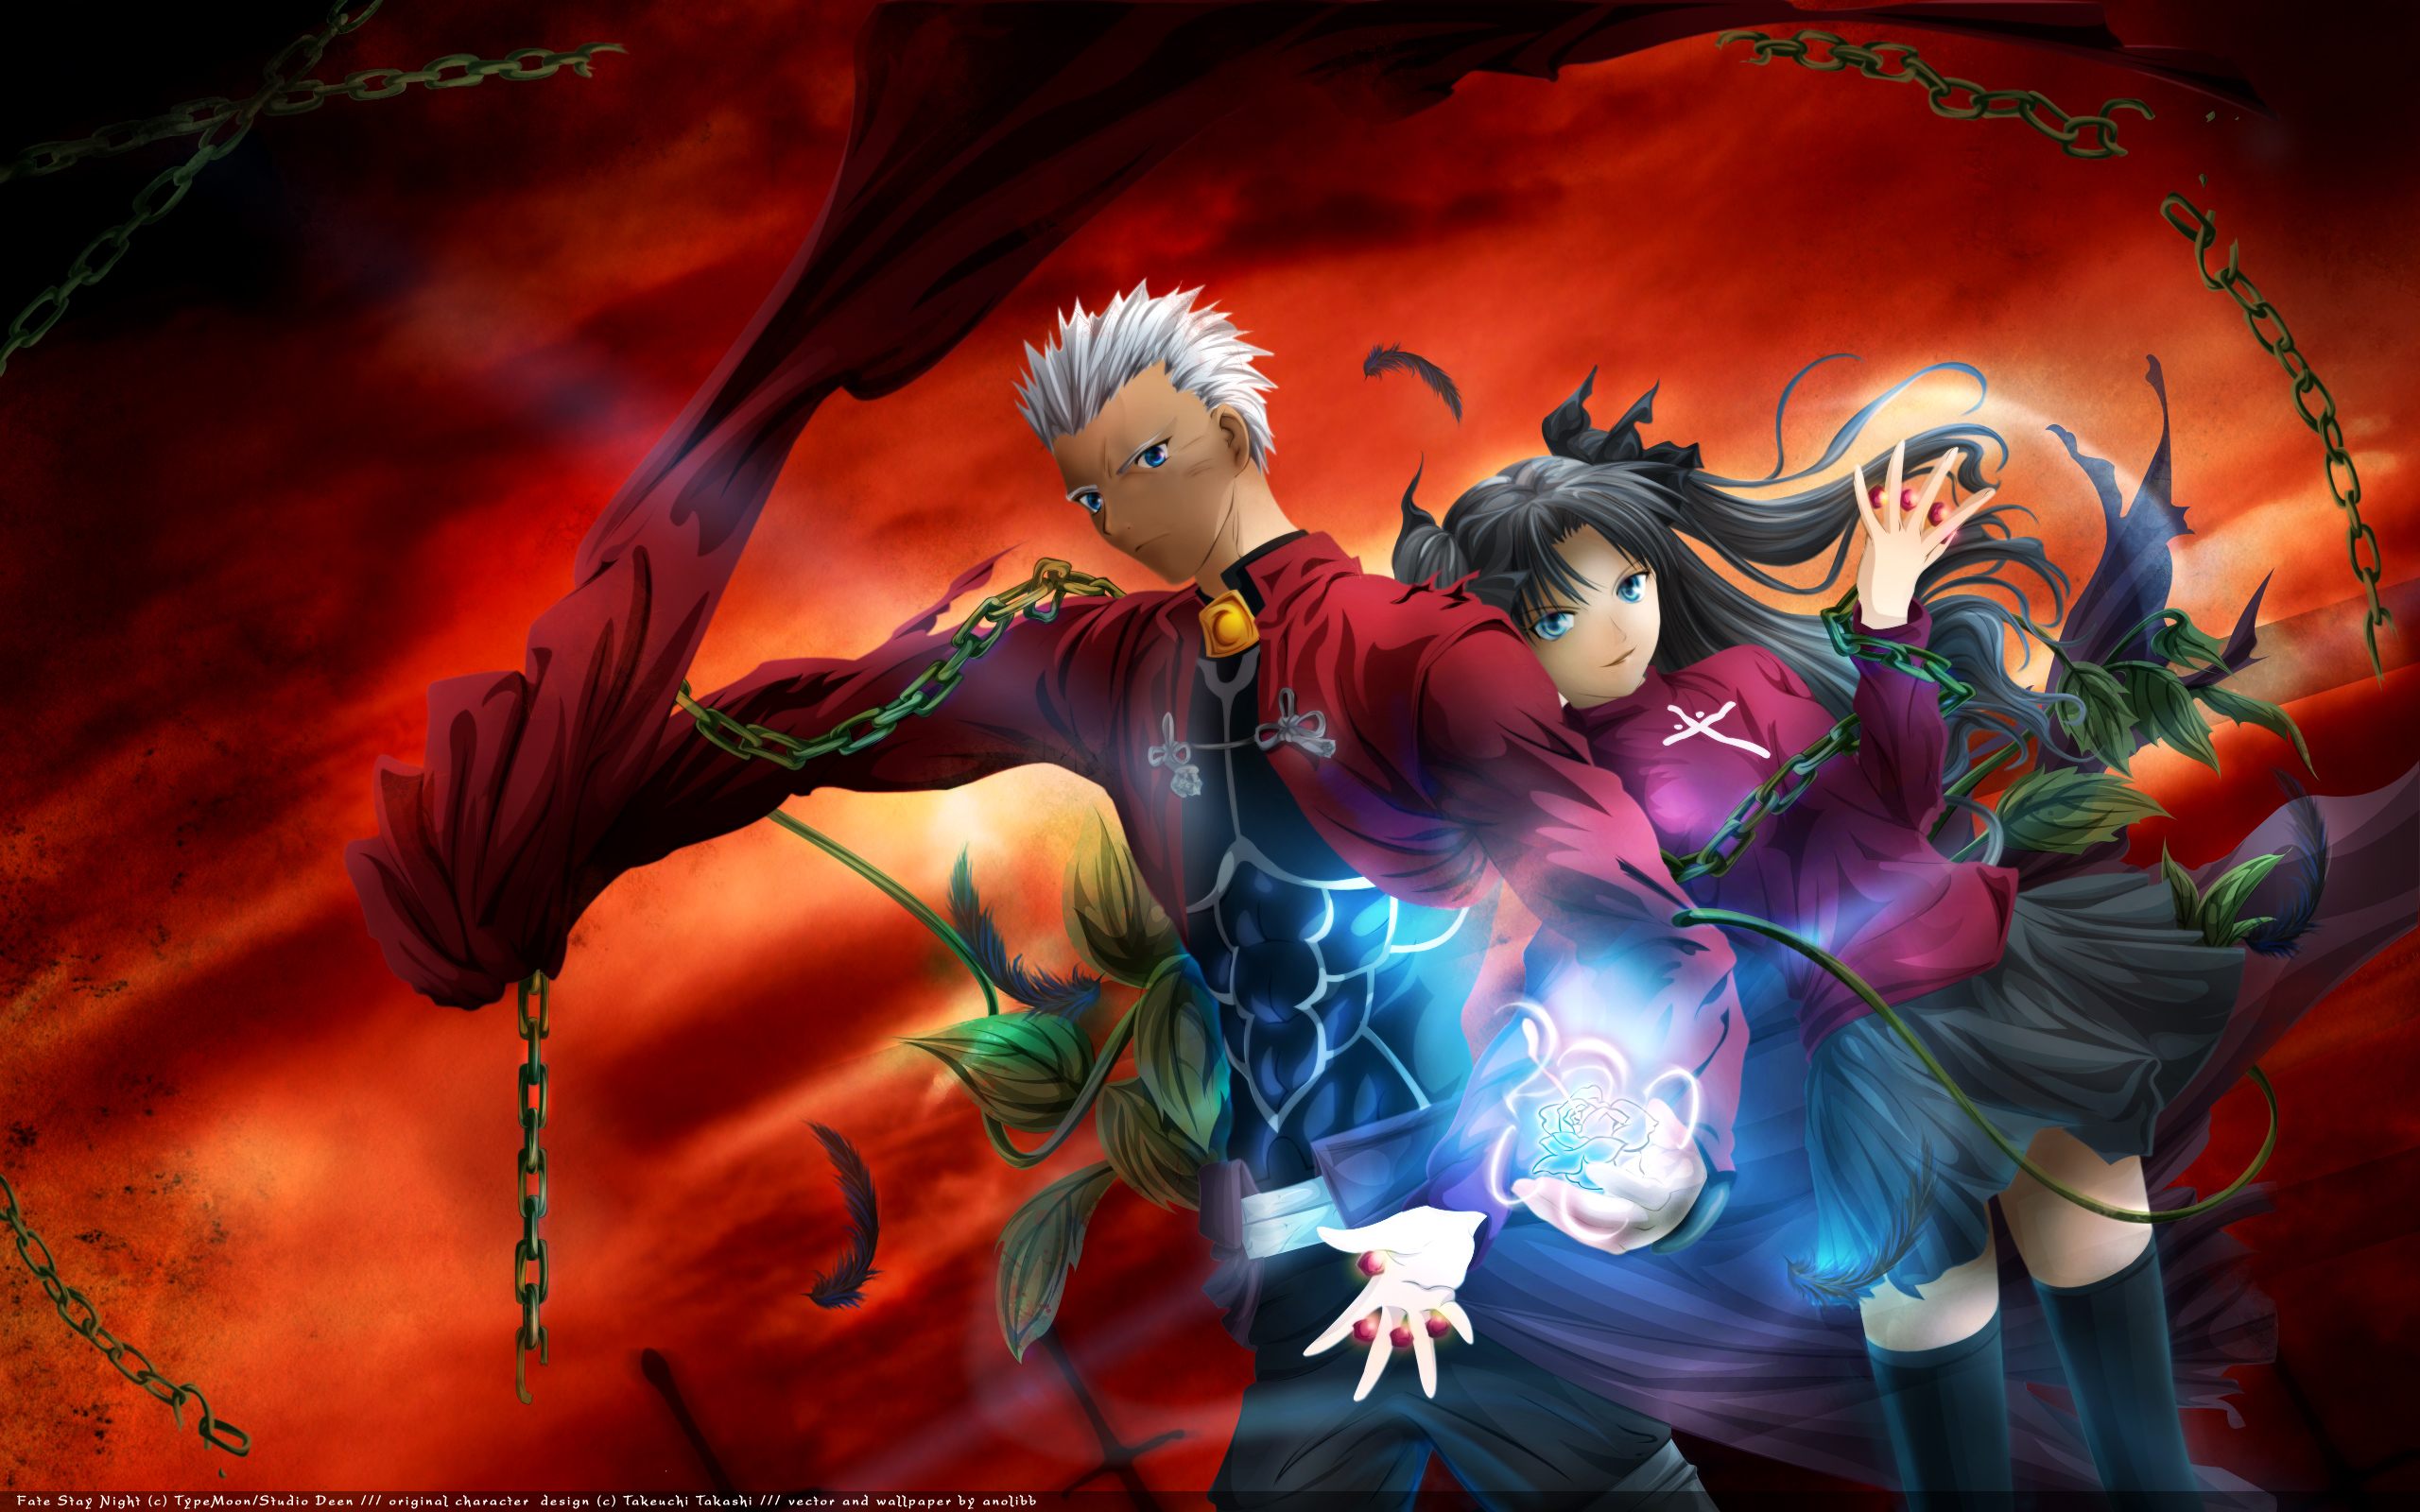 Fate stay night unlimited blade works hd wallpaper background image 2560x1600 id 72786 - Fate stay night wallpaper ...